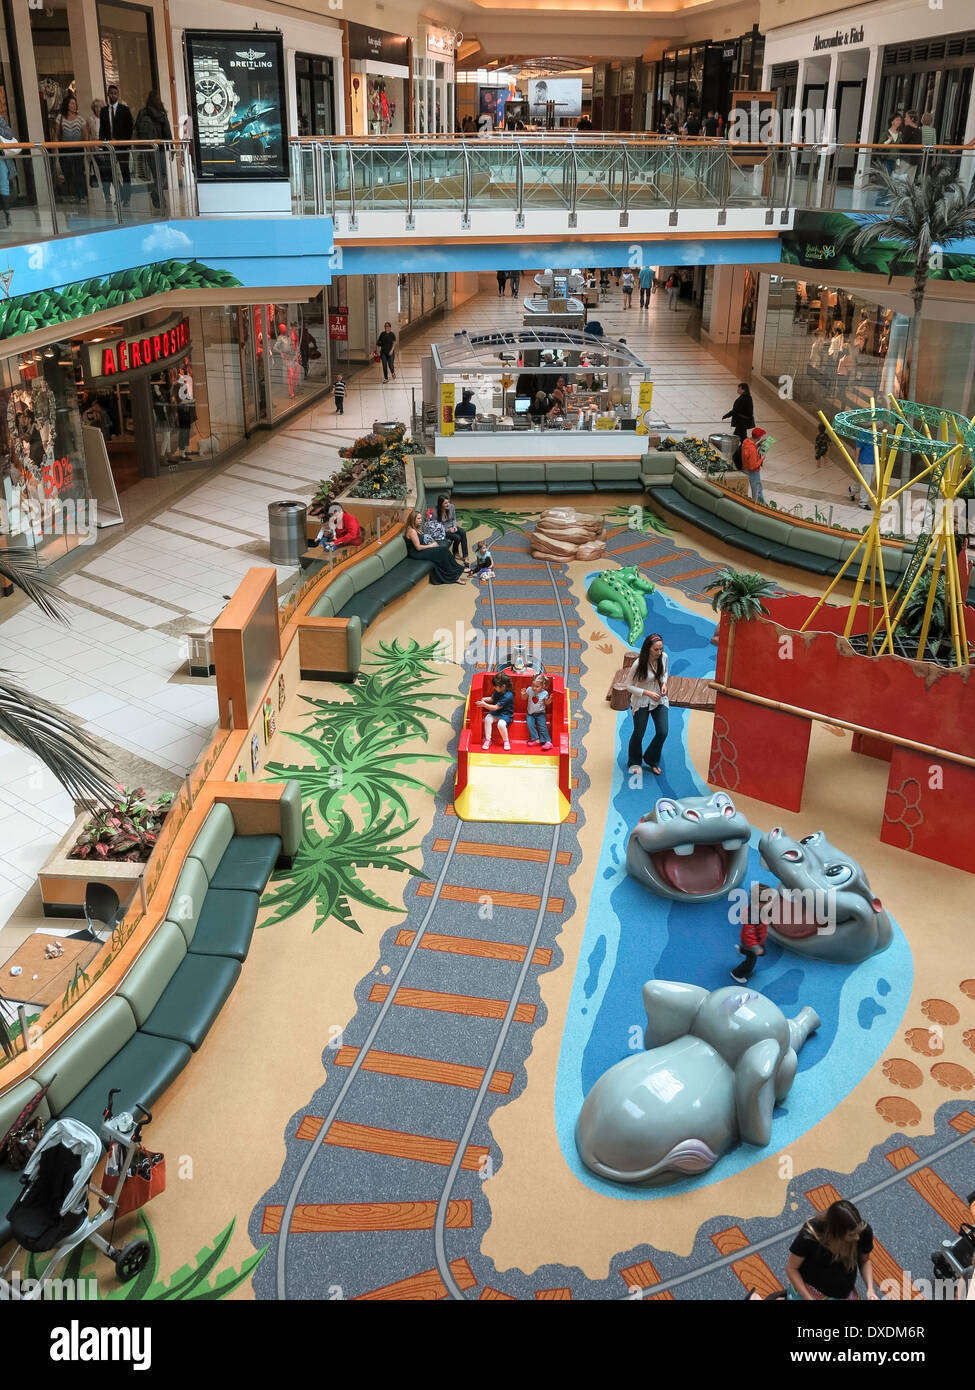 This Epic Indoor Playground in Indiana Is Perfect For Cold